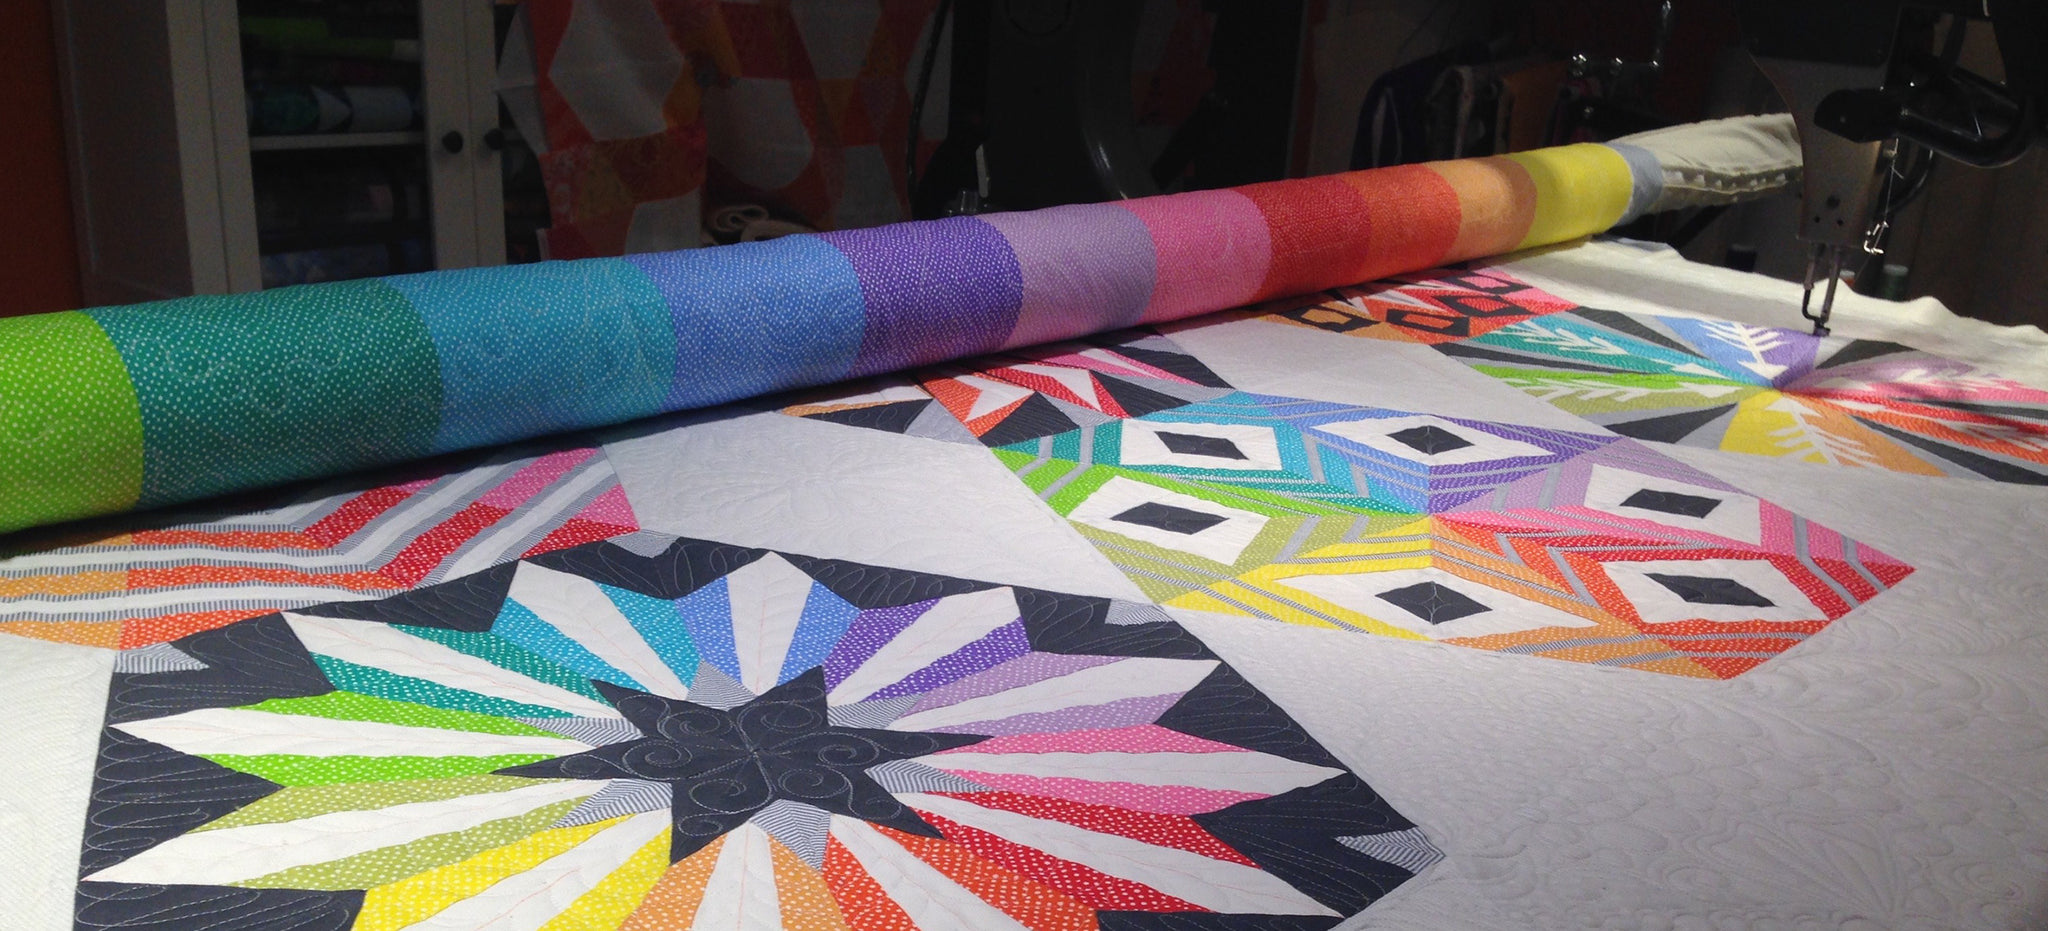 Sewology Sunday - Tips from a Longarm Quilter